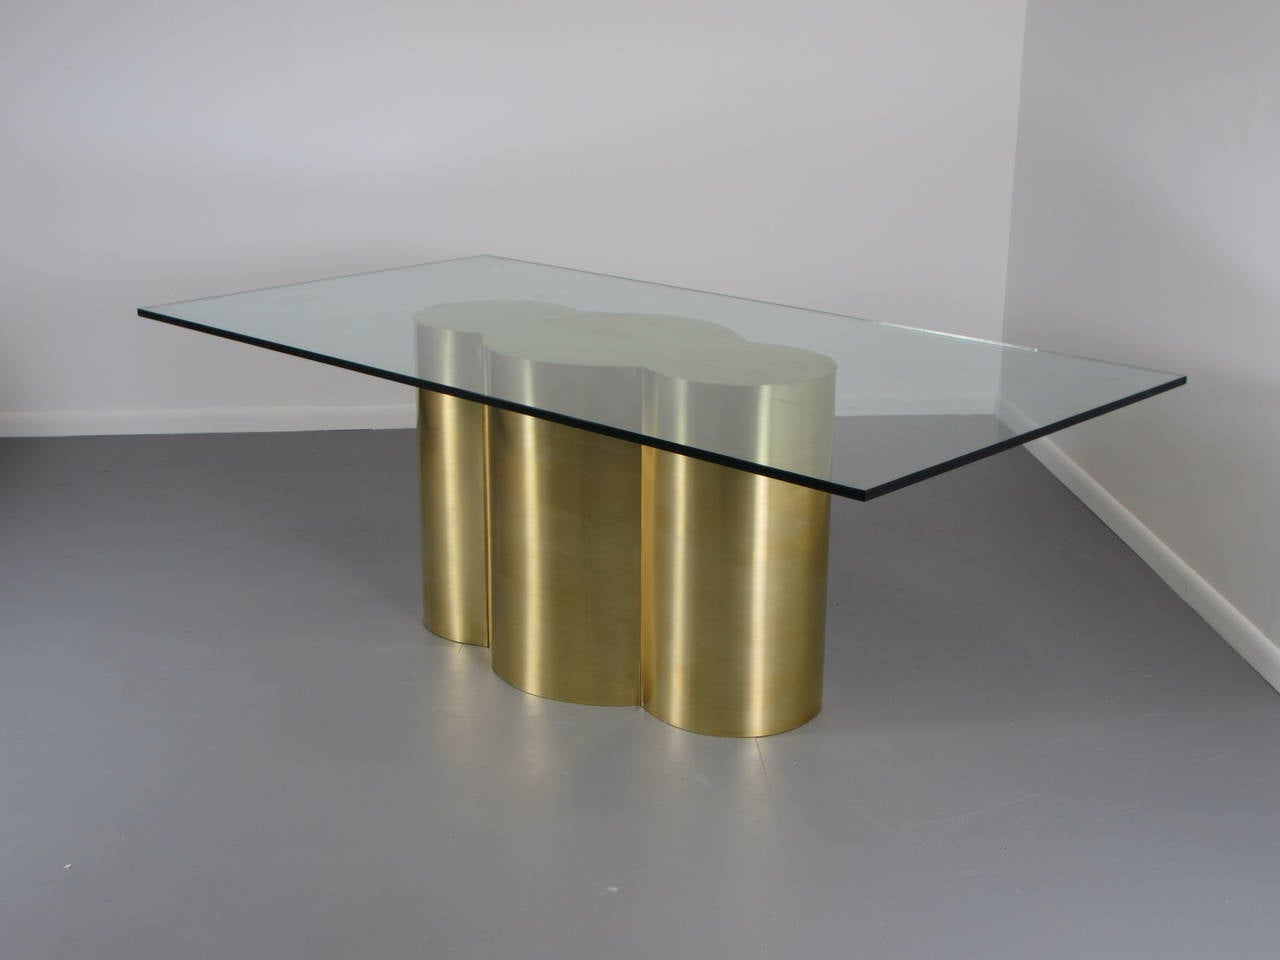 Custom Quatrefoil Dining Table Base In Polished Brass By Refine Limited 2